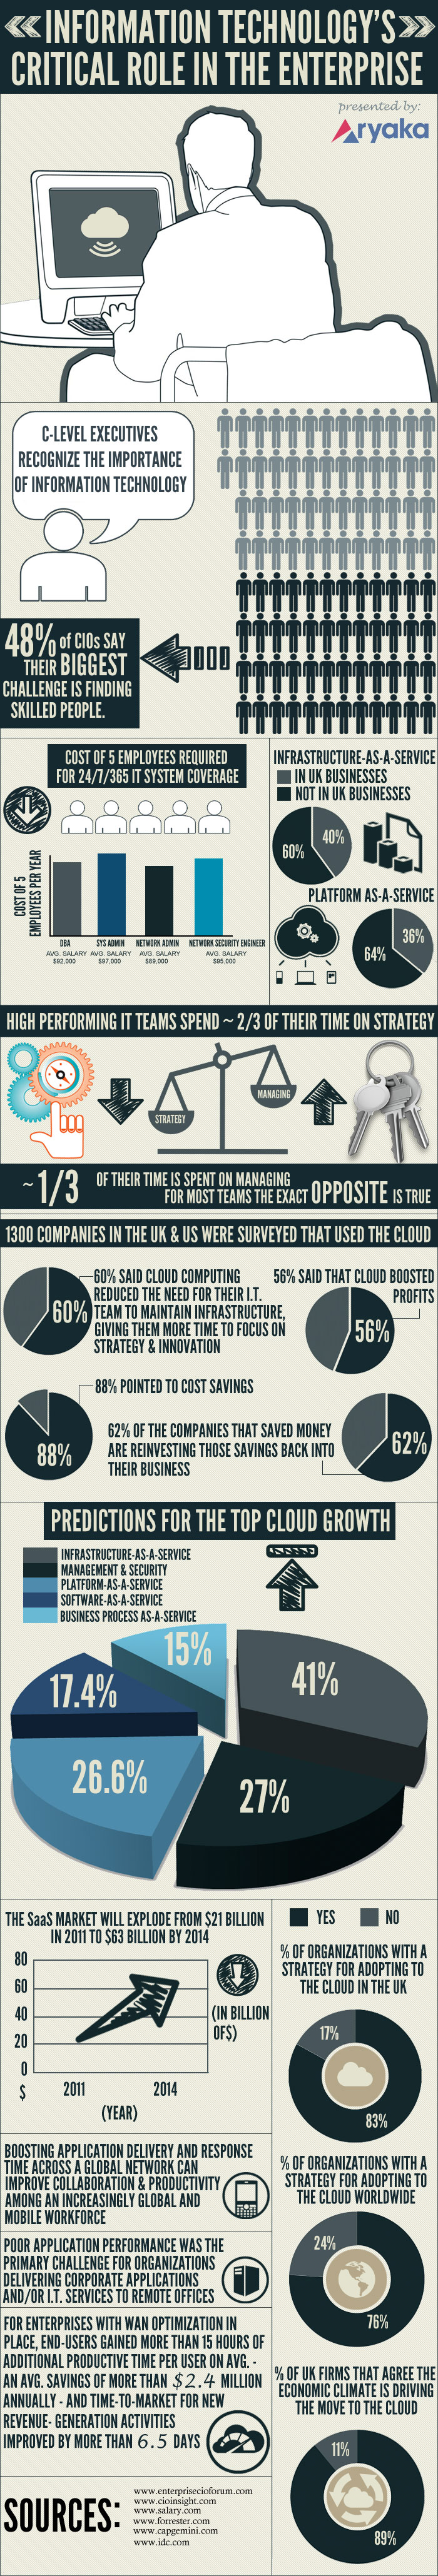 IT Enterprise Strategy-Infographic